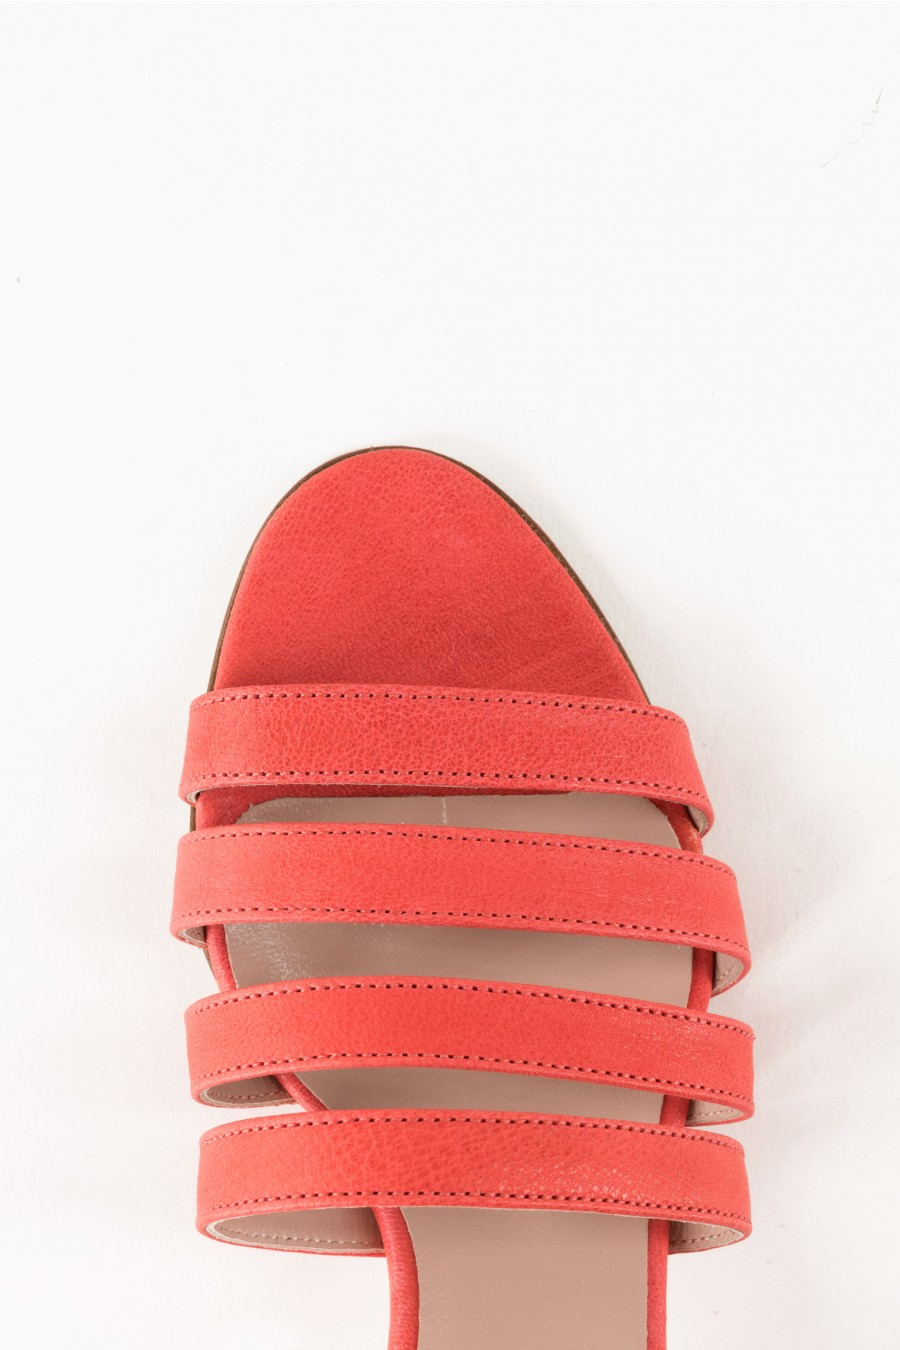 Strawberry sandals with lists